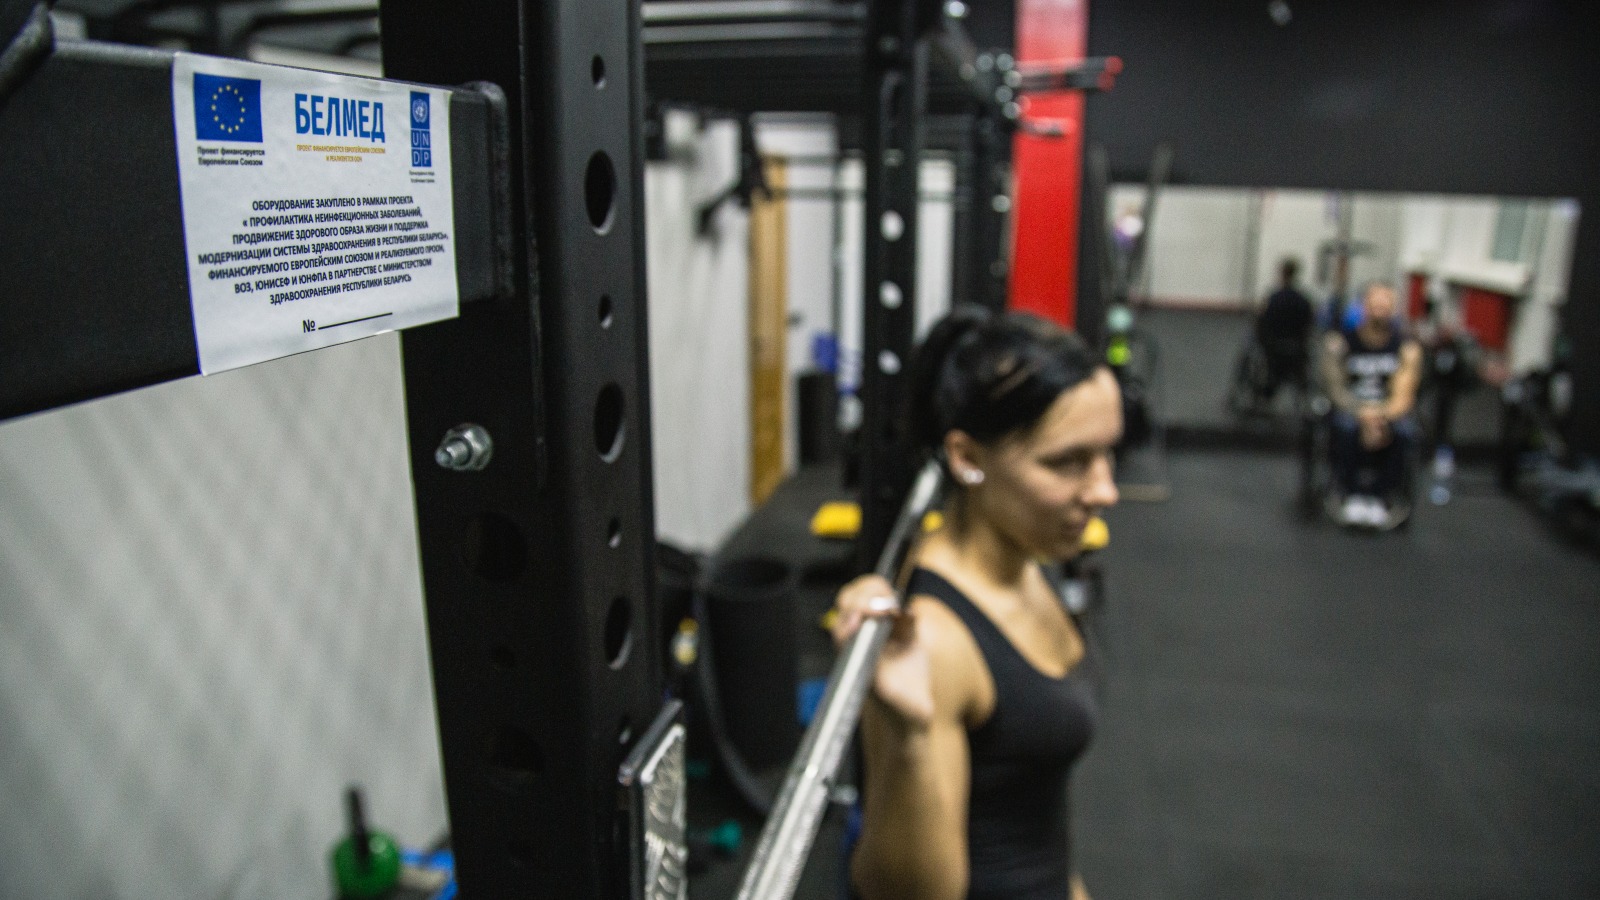 CrossFit gym is gaining popularity in Lida